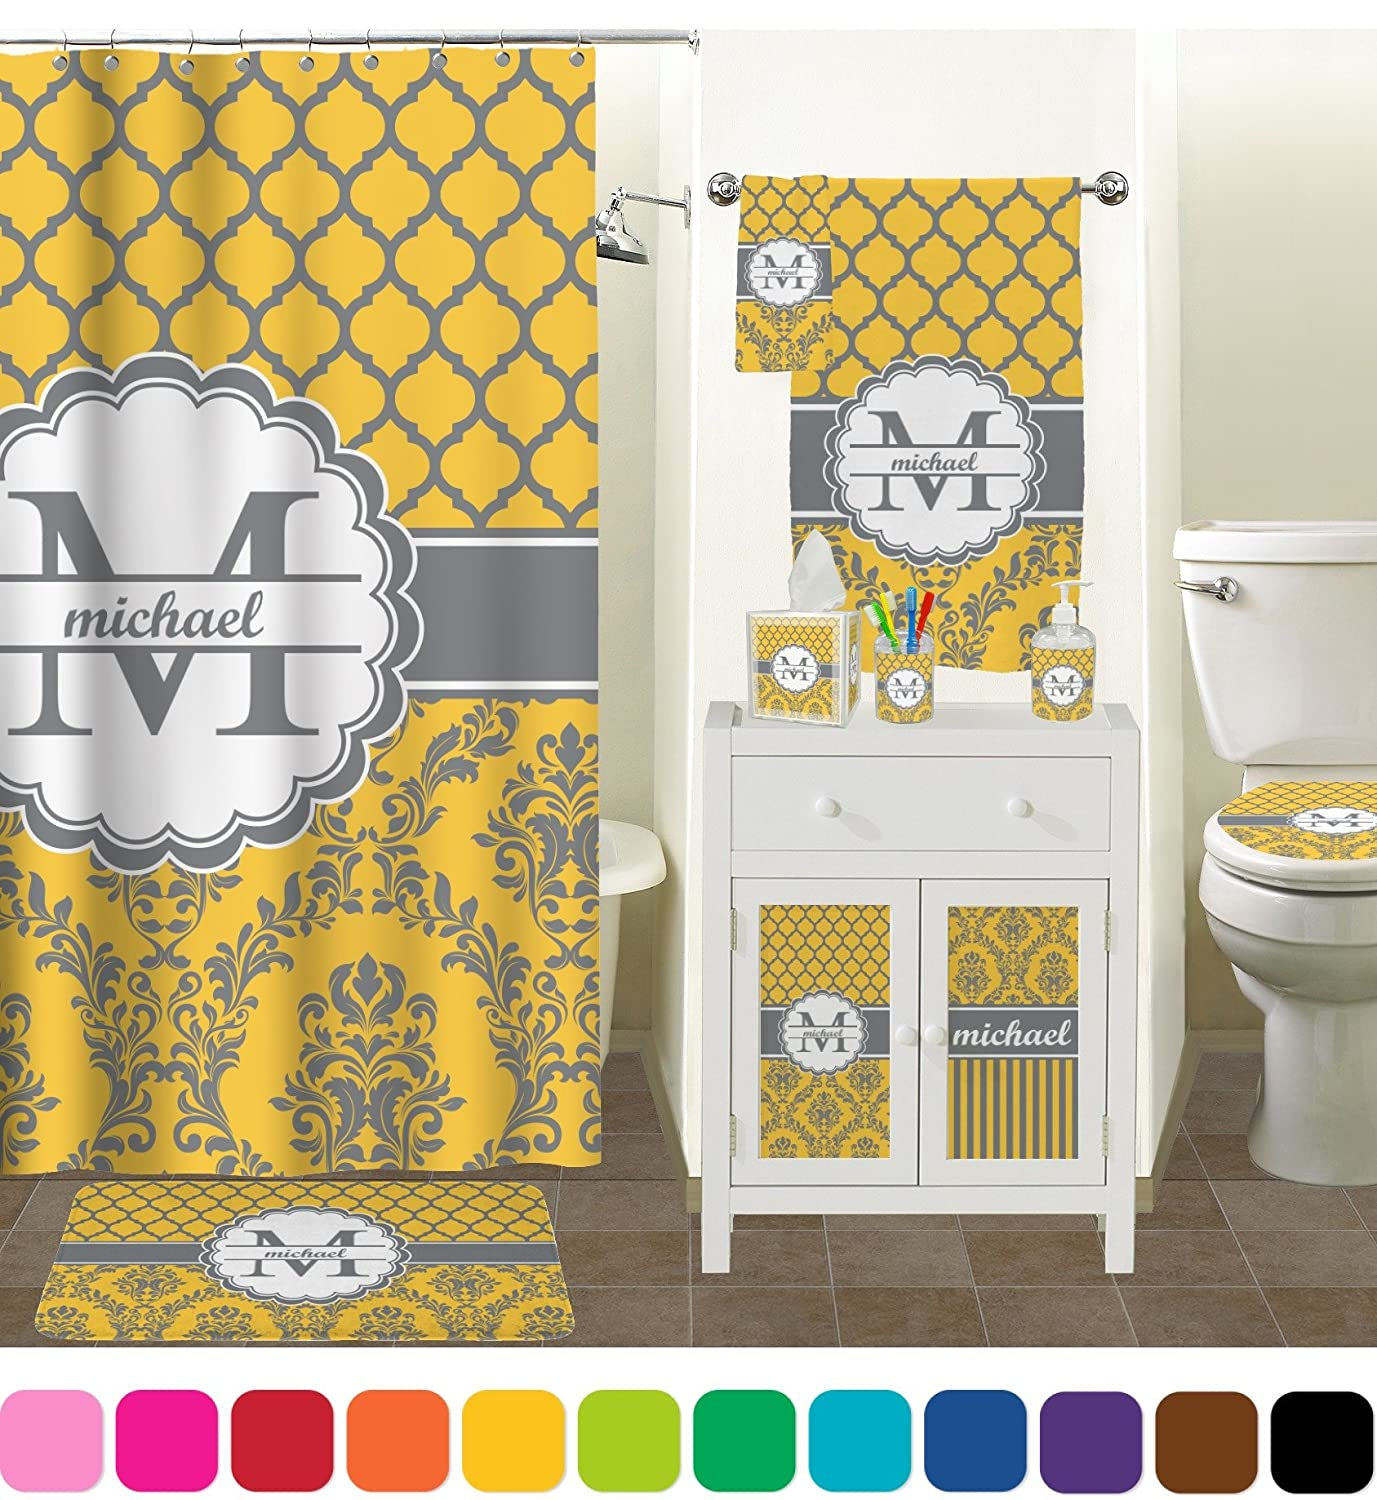 Moroccan bathroom accessories - Amazon Com Damask Moroccan Bathroom Accessories Set Personalized Home Kitchen